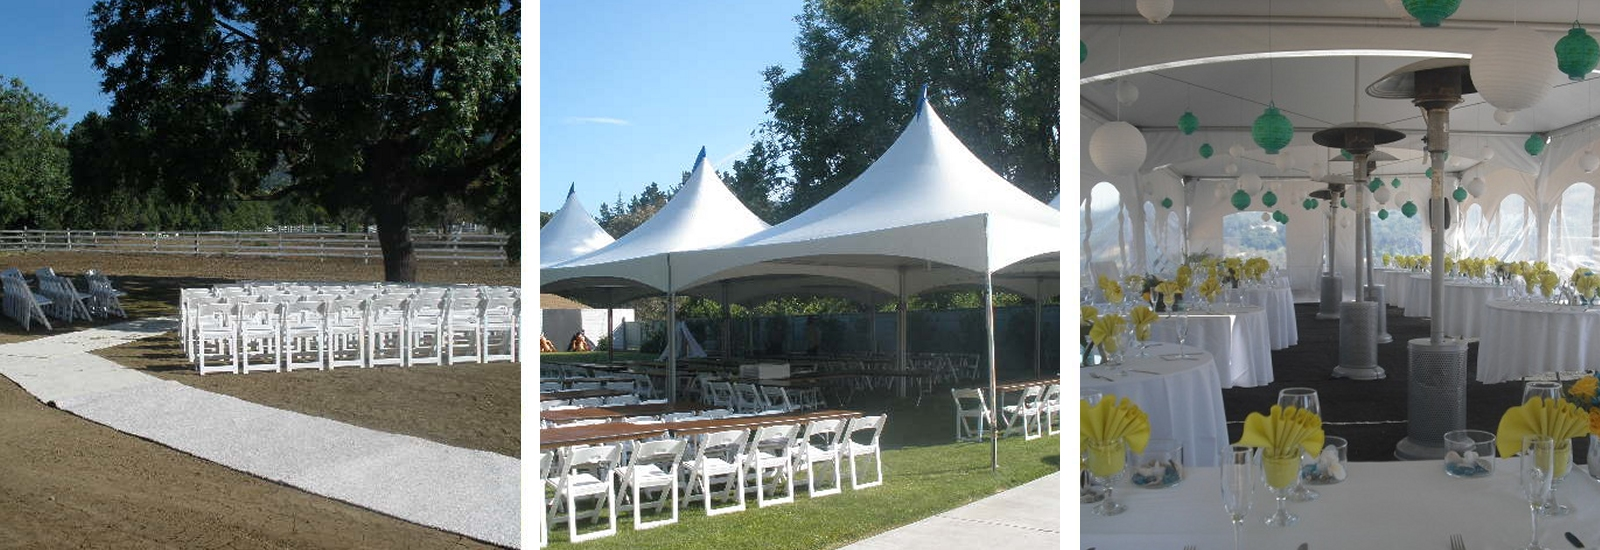 Uncategorized Contra Costa Appliance And Kitchen Center party rentals in concord ca equipment pittsburg and special event the greater contra costa area